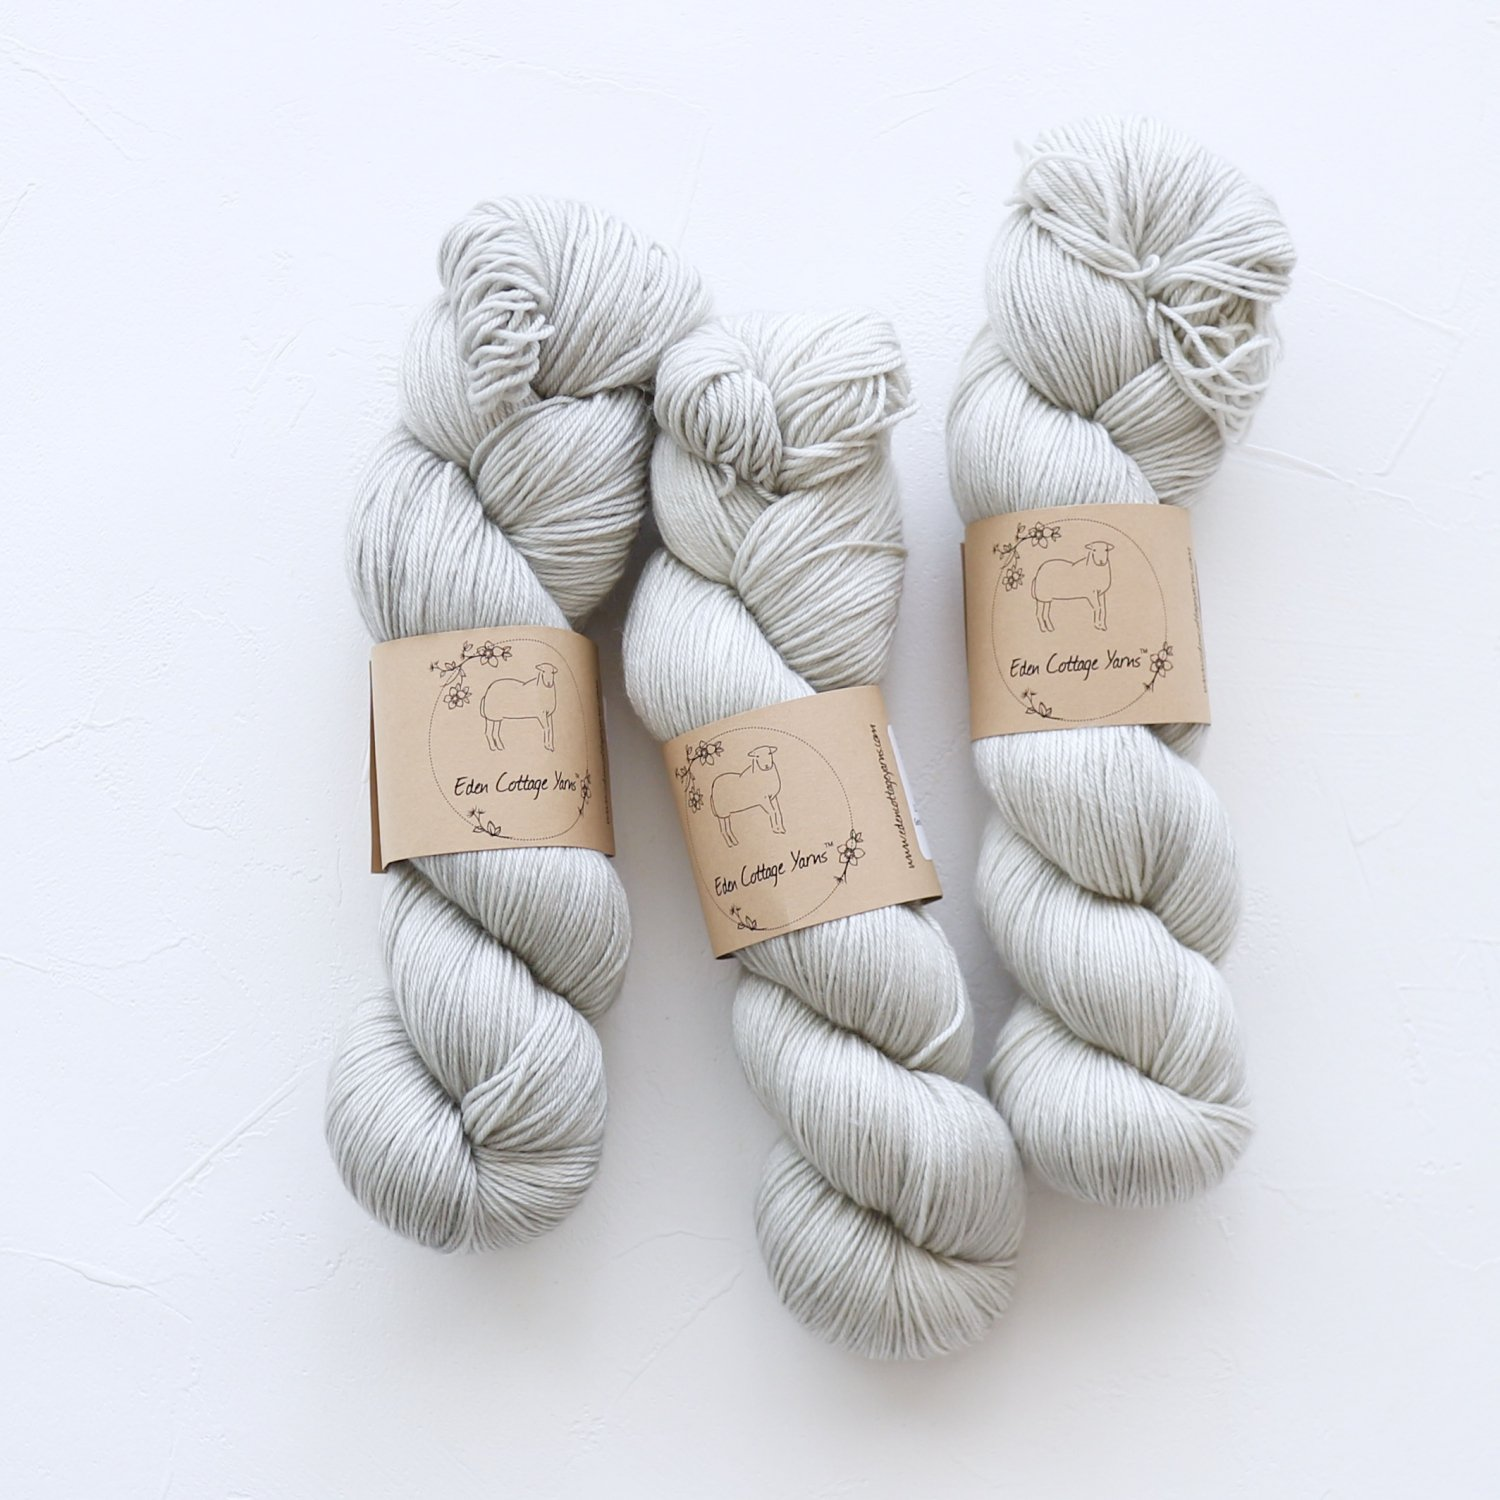 【Eden Cottage Yarns】<br>Pendle 4ply<br>Steel